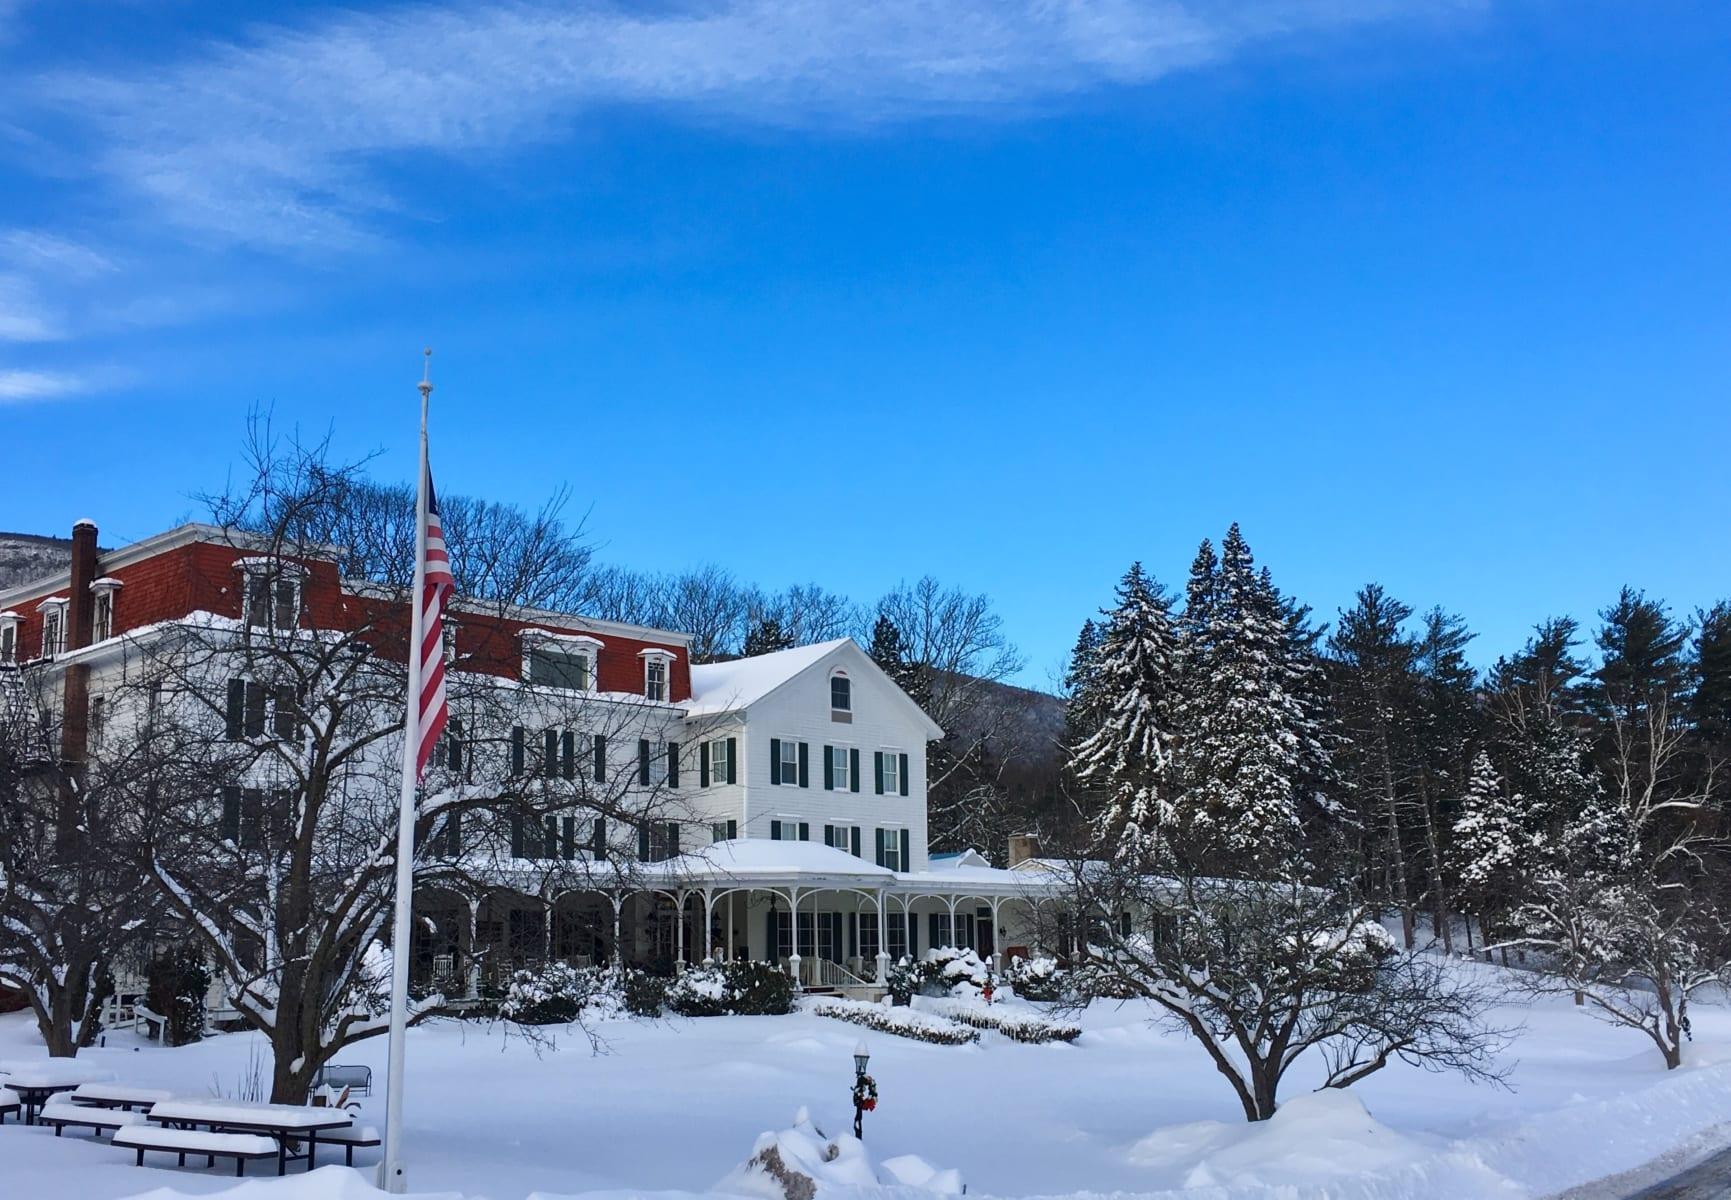 Colonial style resort after Catskills winter storm